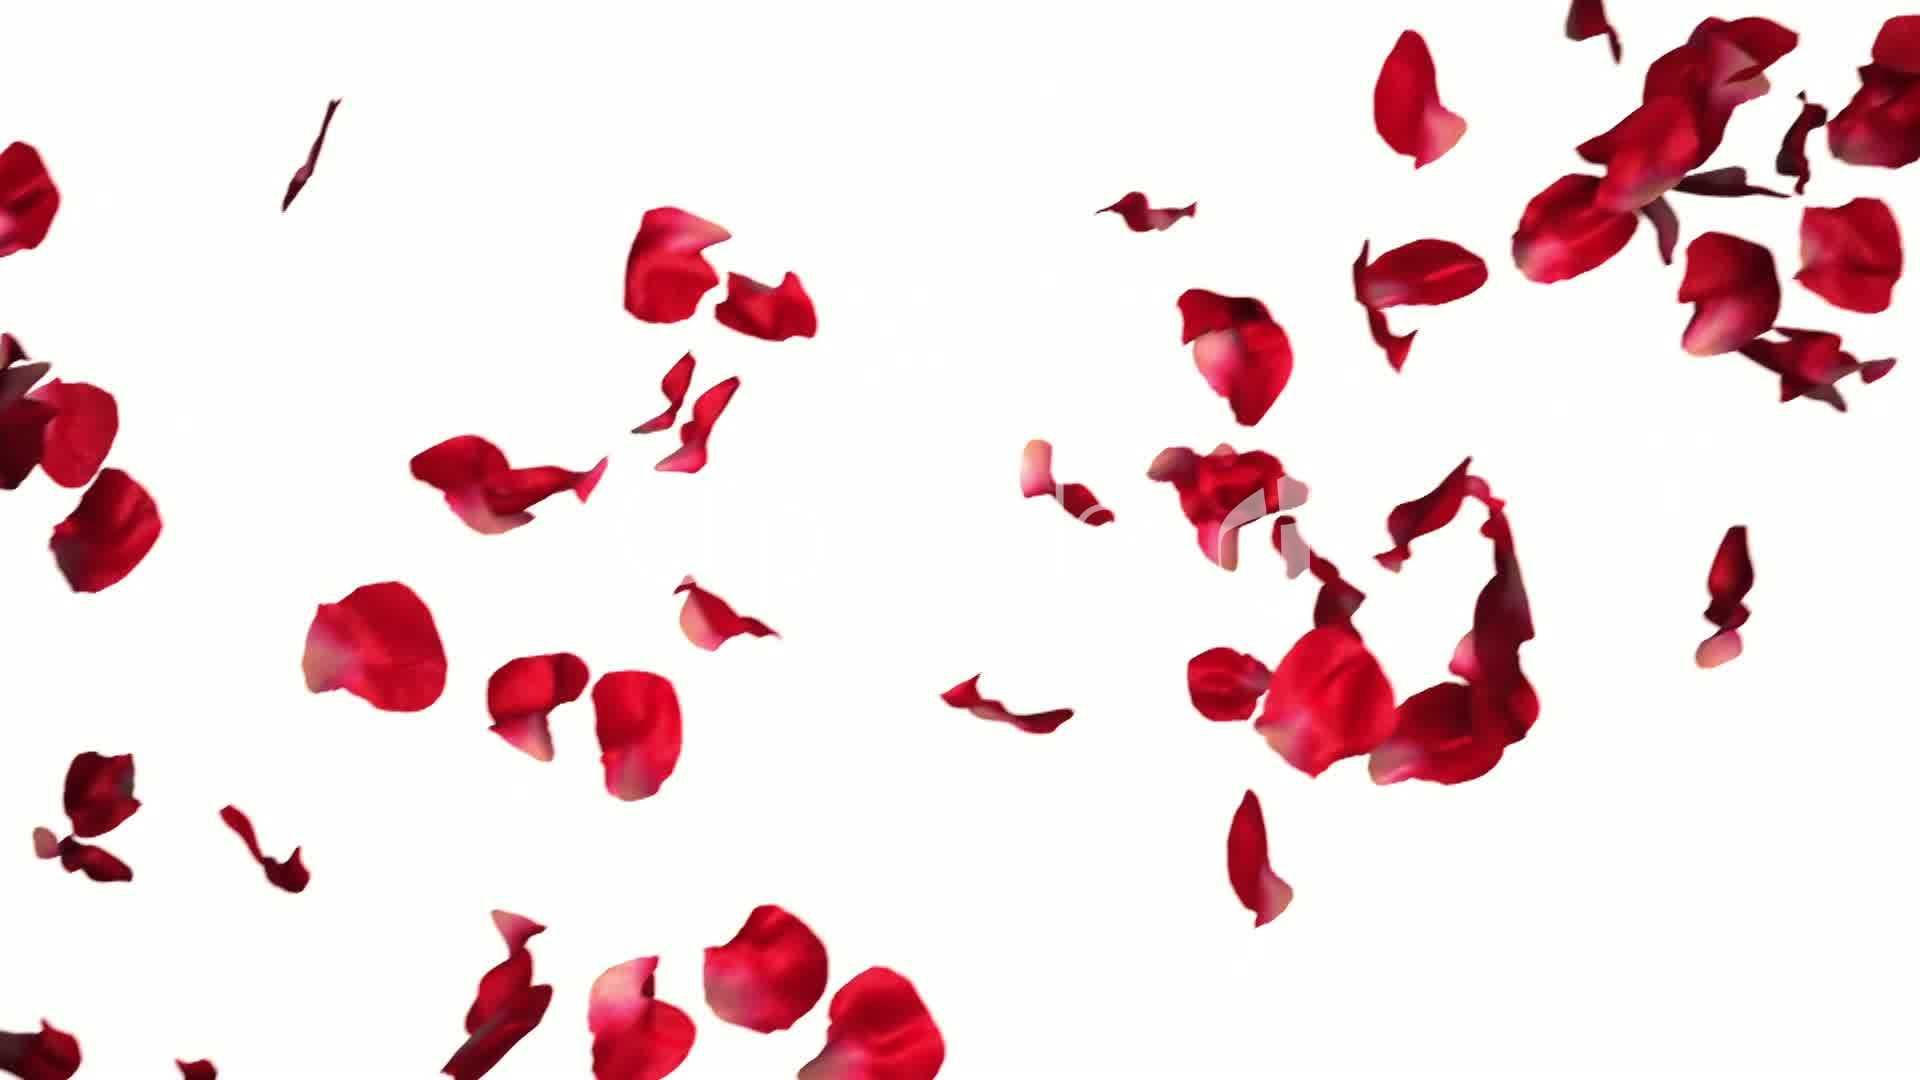 red falling petals pictures